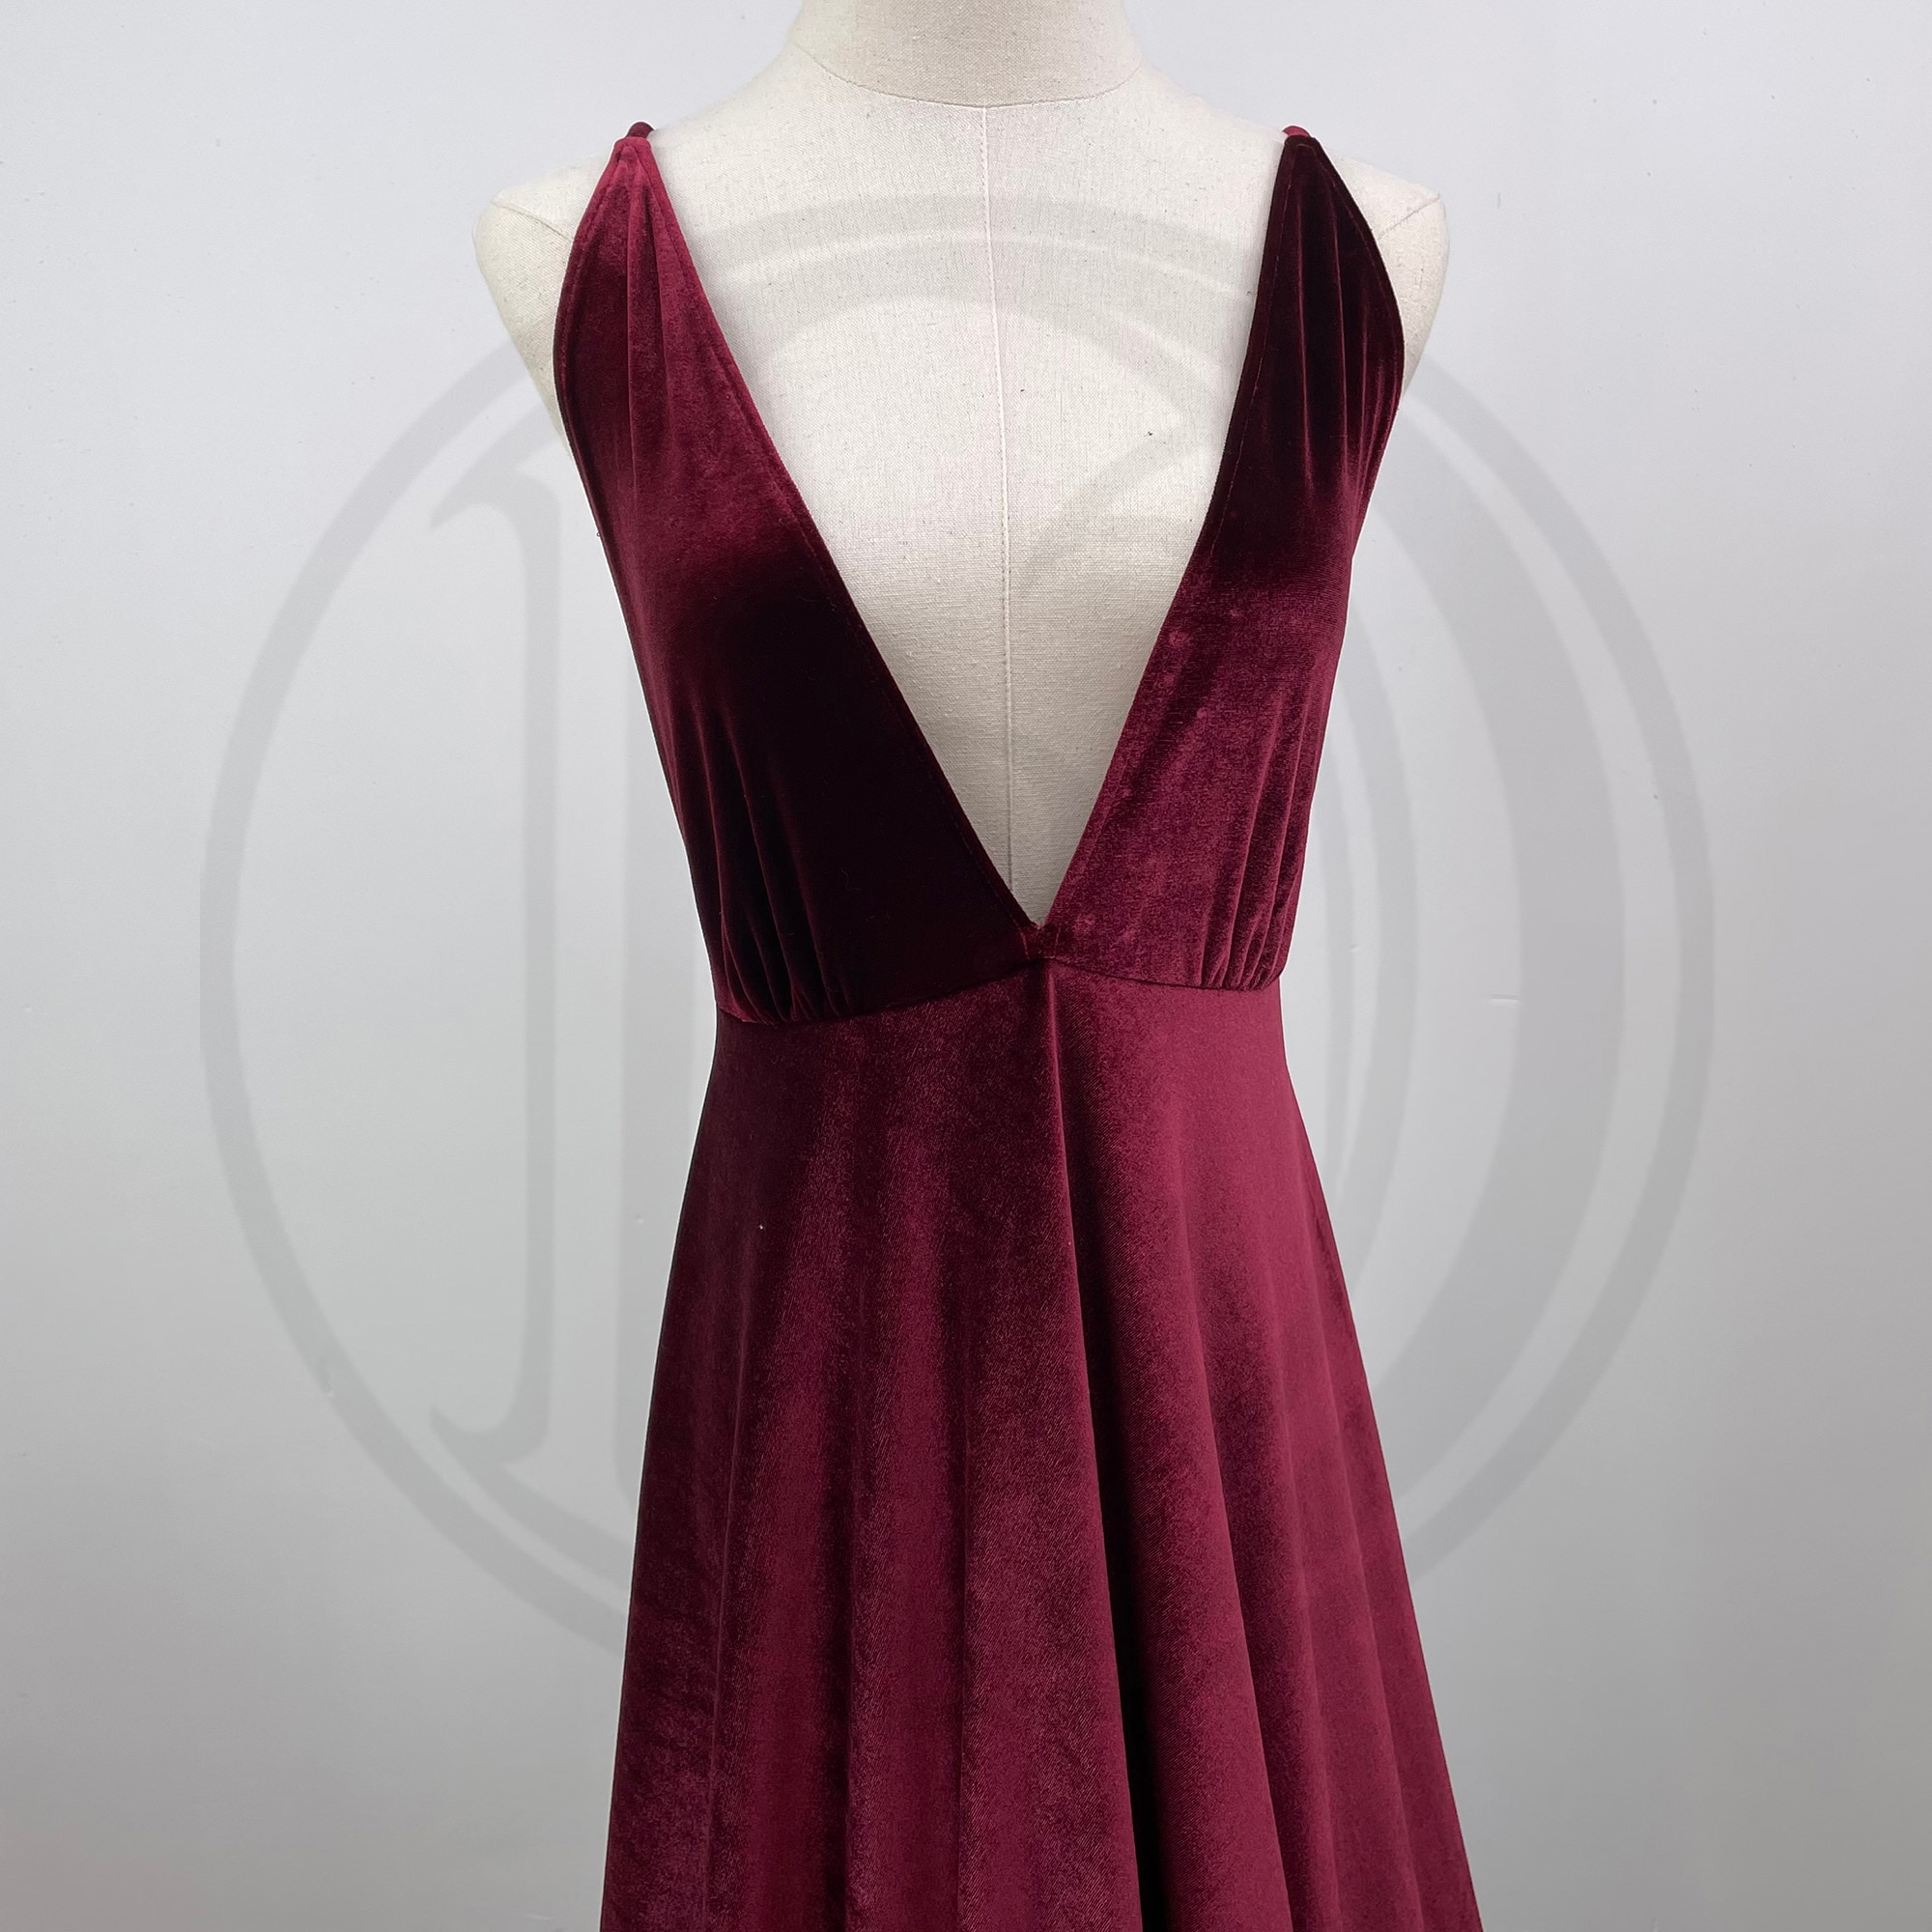 Soft Maxi Long Deep V Maternity Dress Pregnant Velvet Gown Evening Party Robe for Woman Photography Prop Baby Shower Costume enlarge